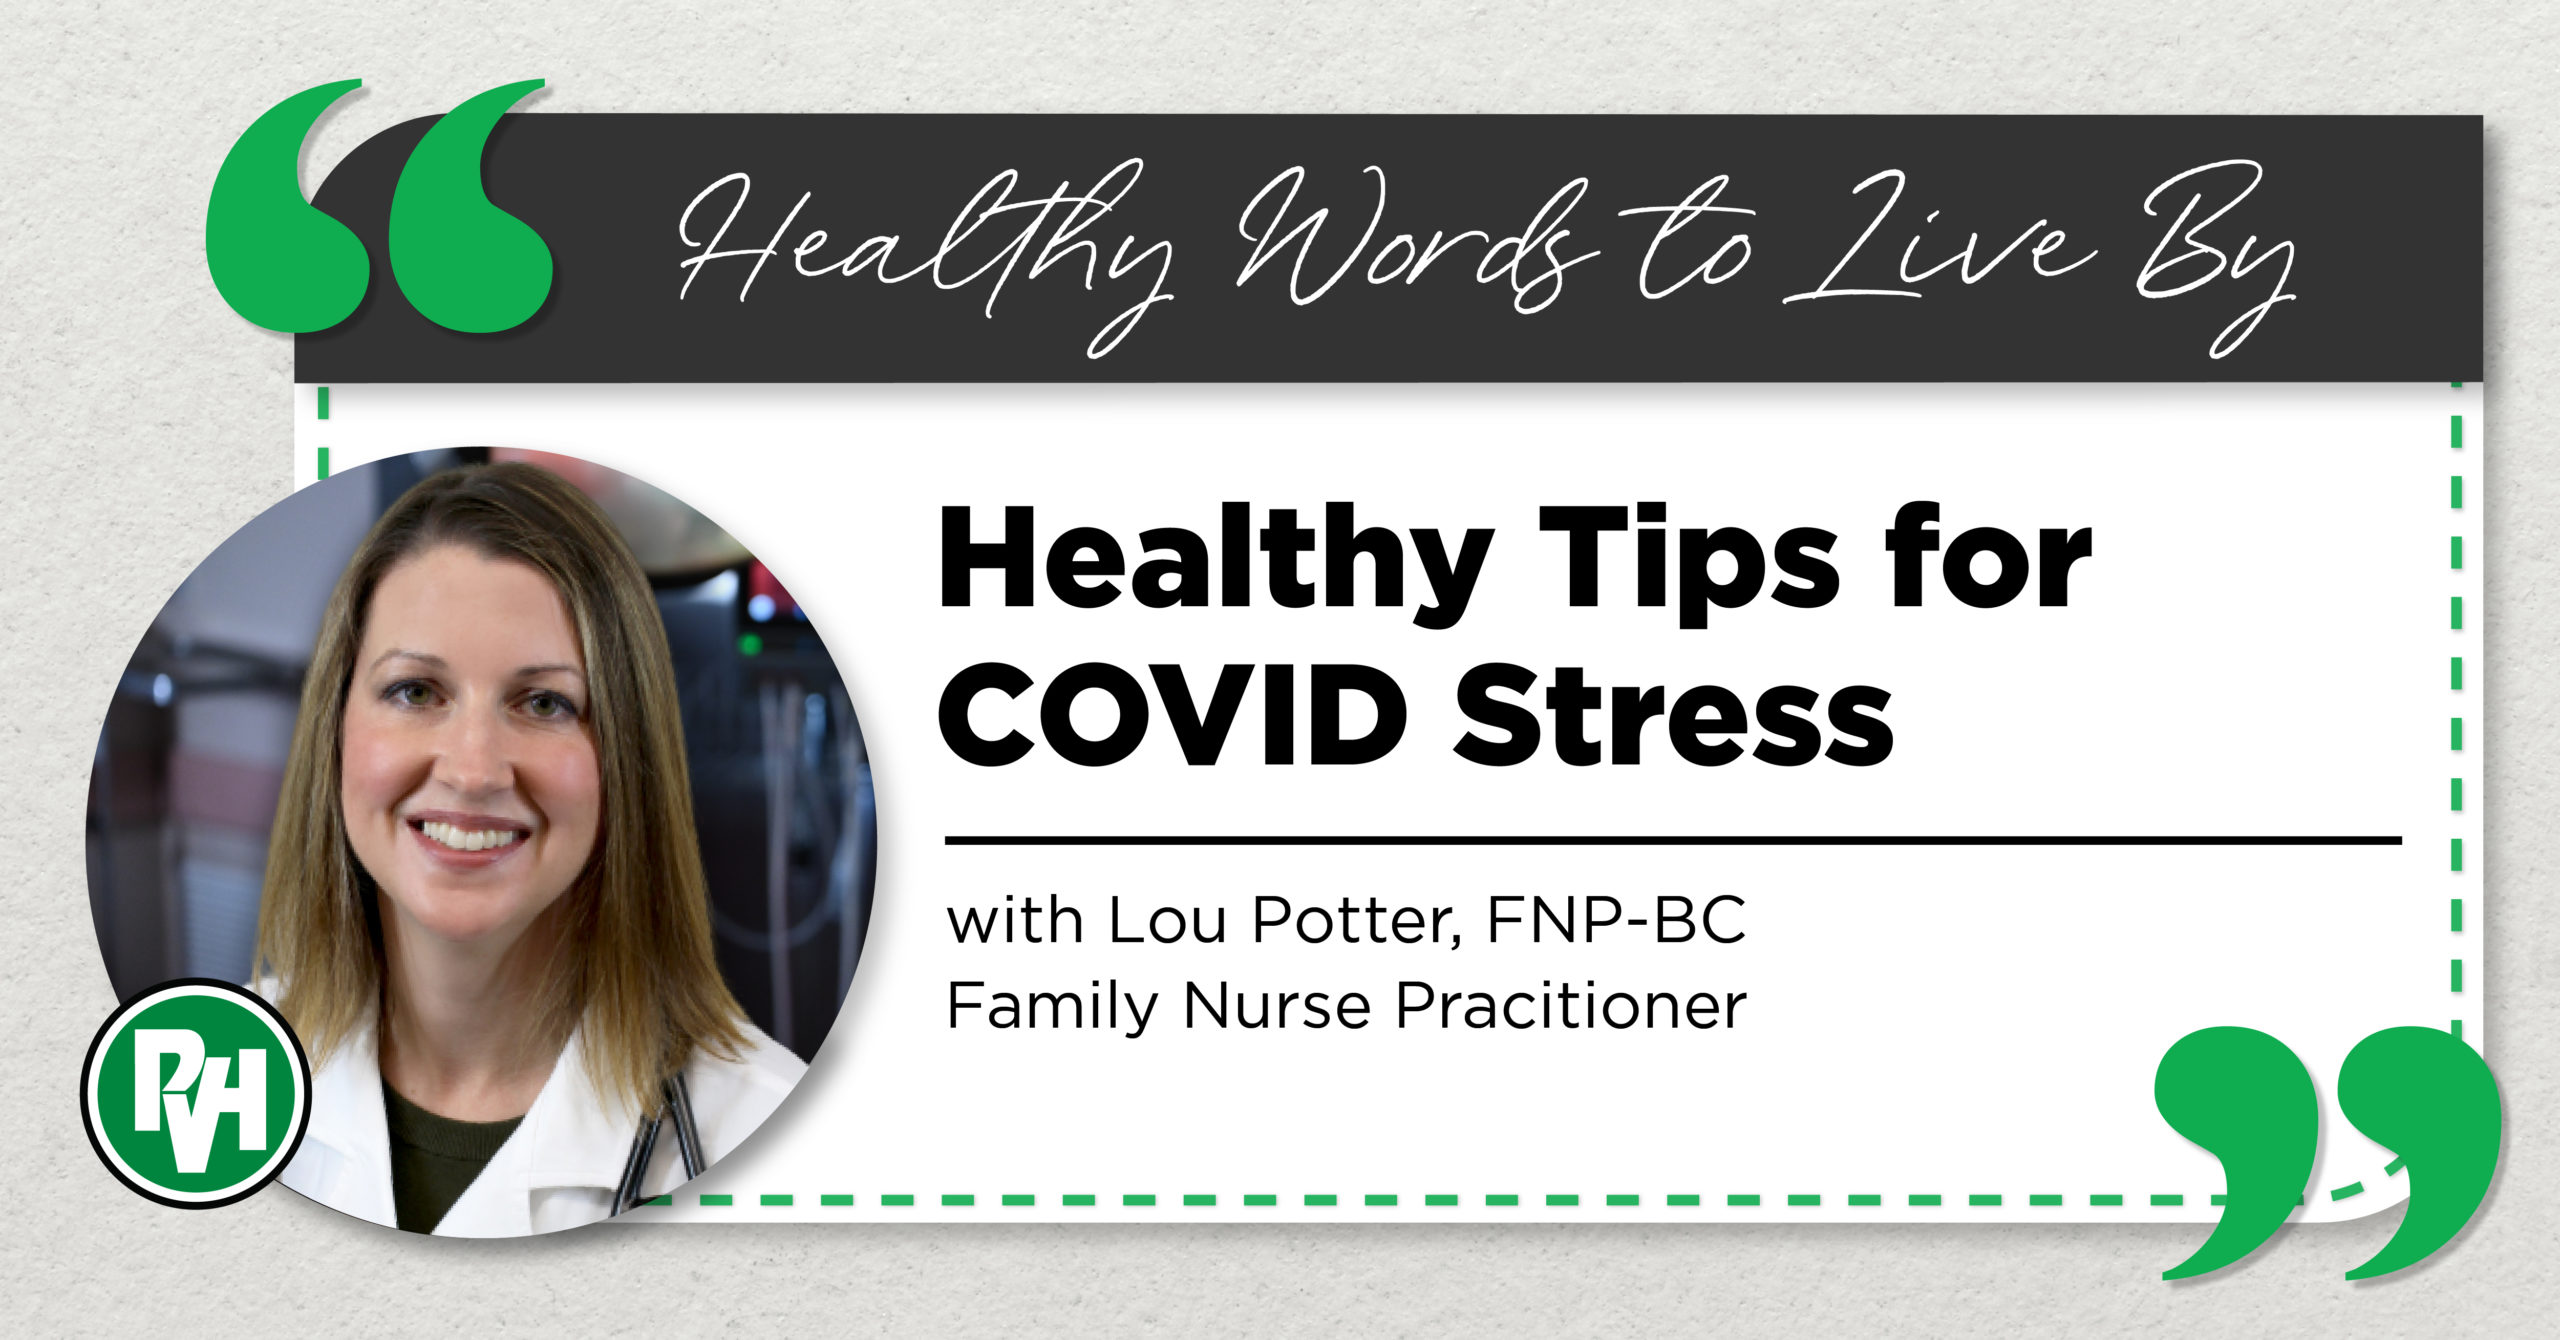 Healthy Words to Live By - Healthy Tips for COVID Stress with Lou Potter, FNP-BC, Family Nurse Practitioner